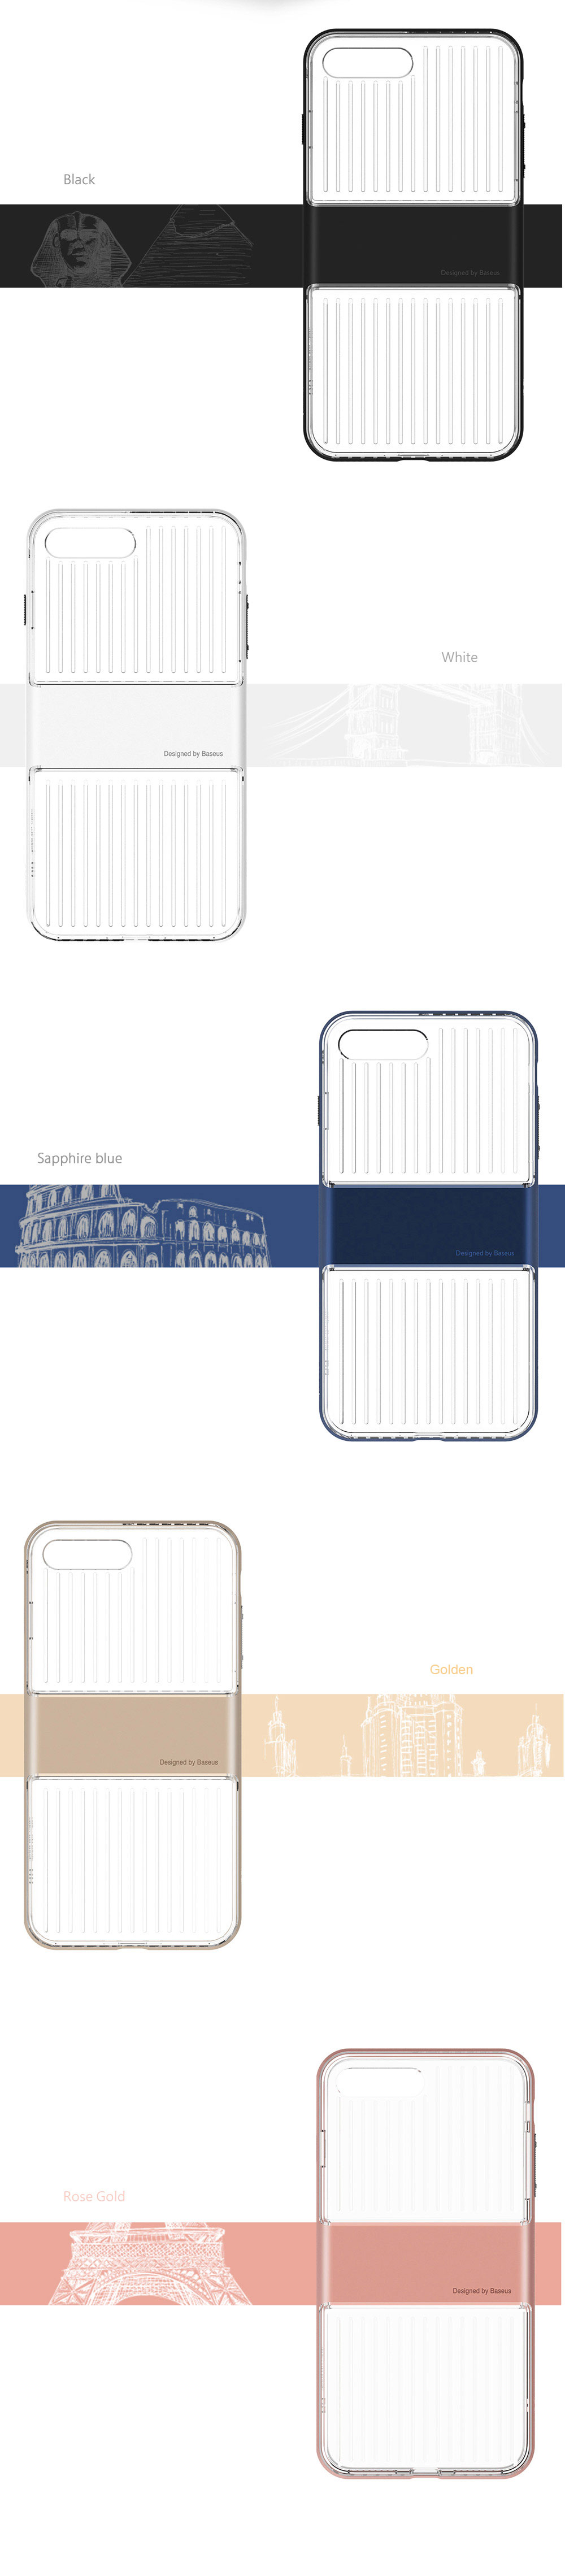 Baseus Travel Series Transparent Type TPU + PC Double Protection Skin for iPhone 7